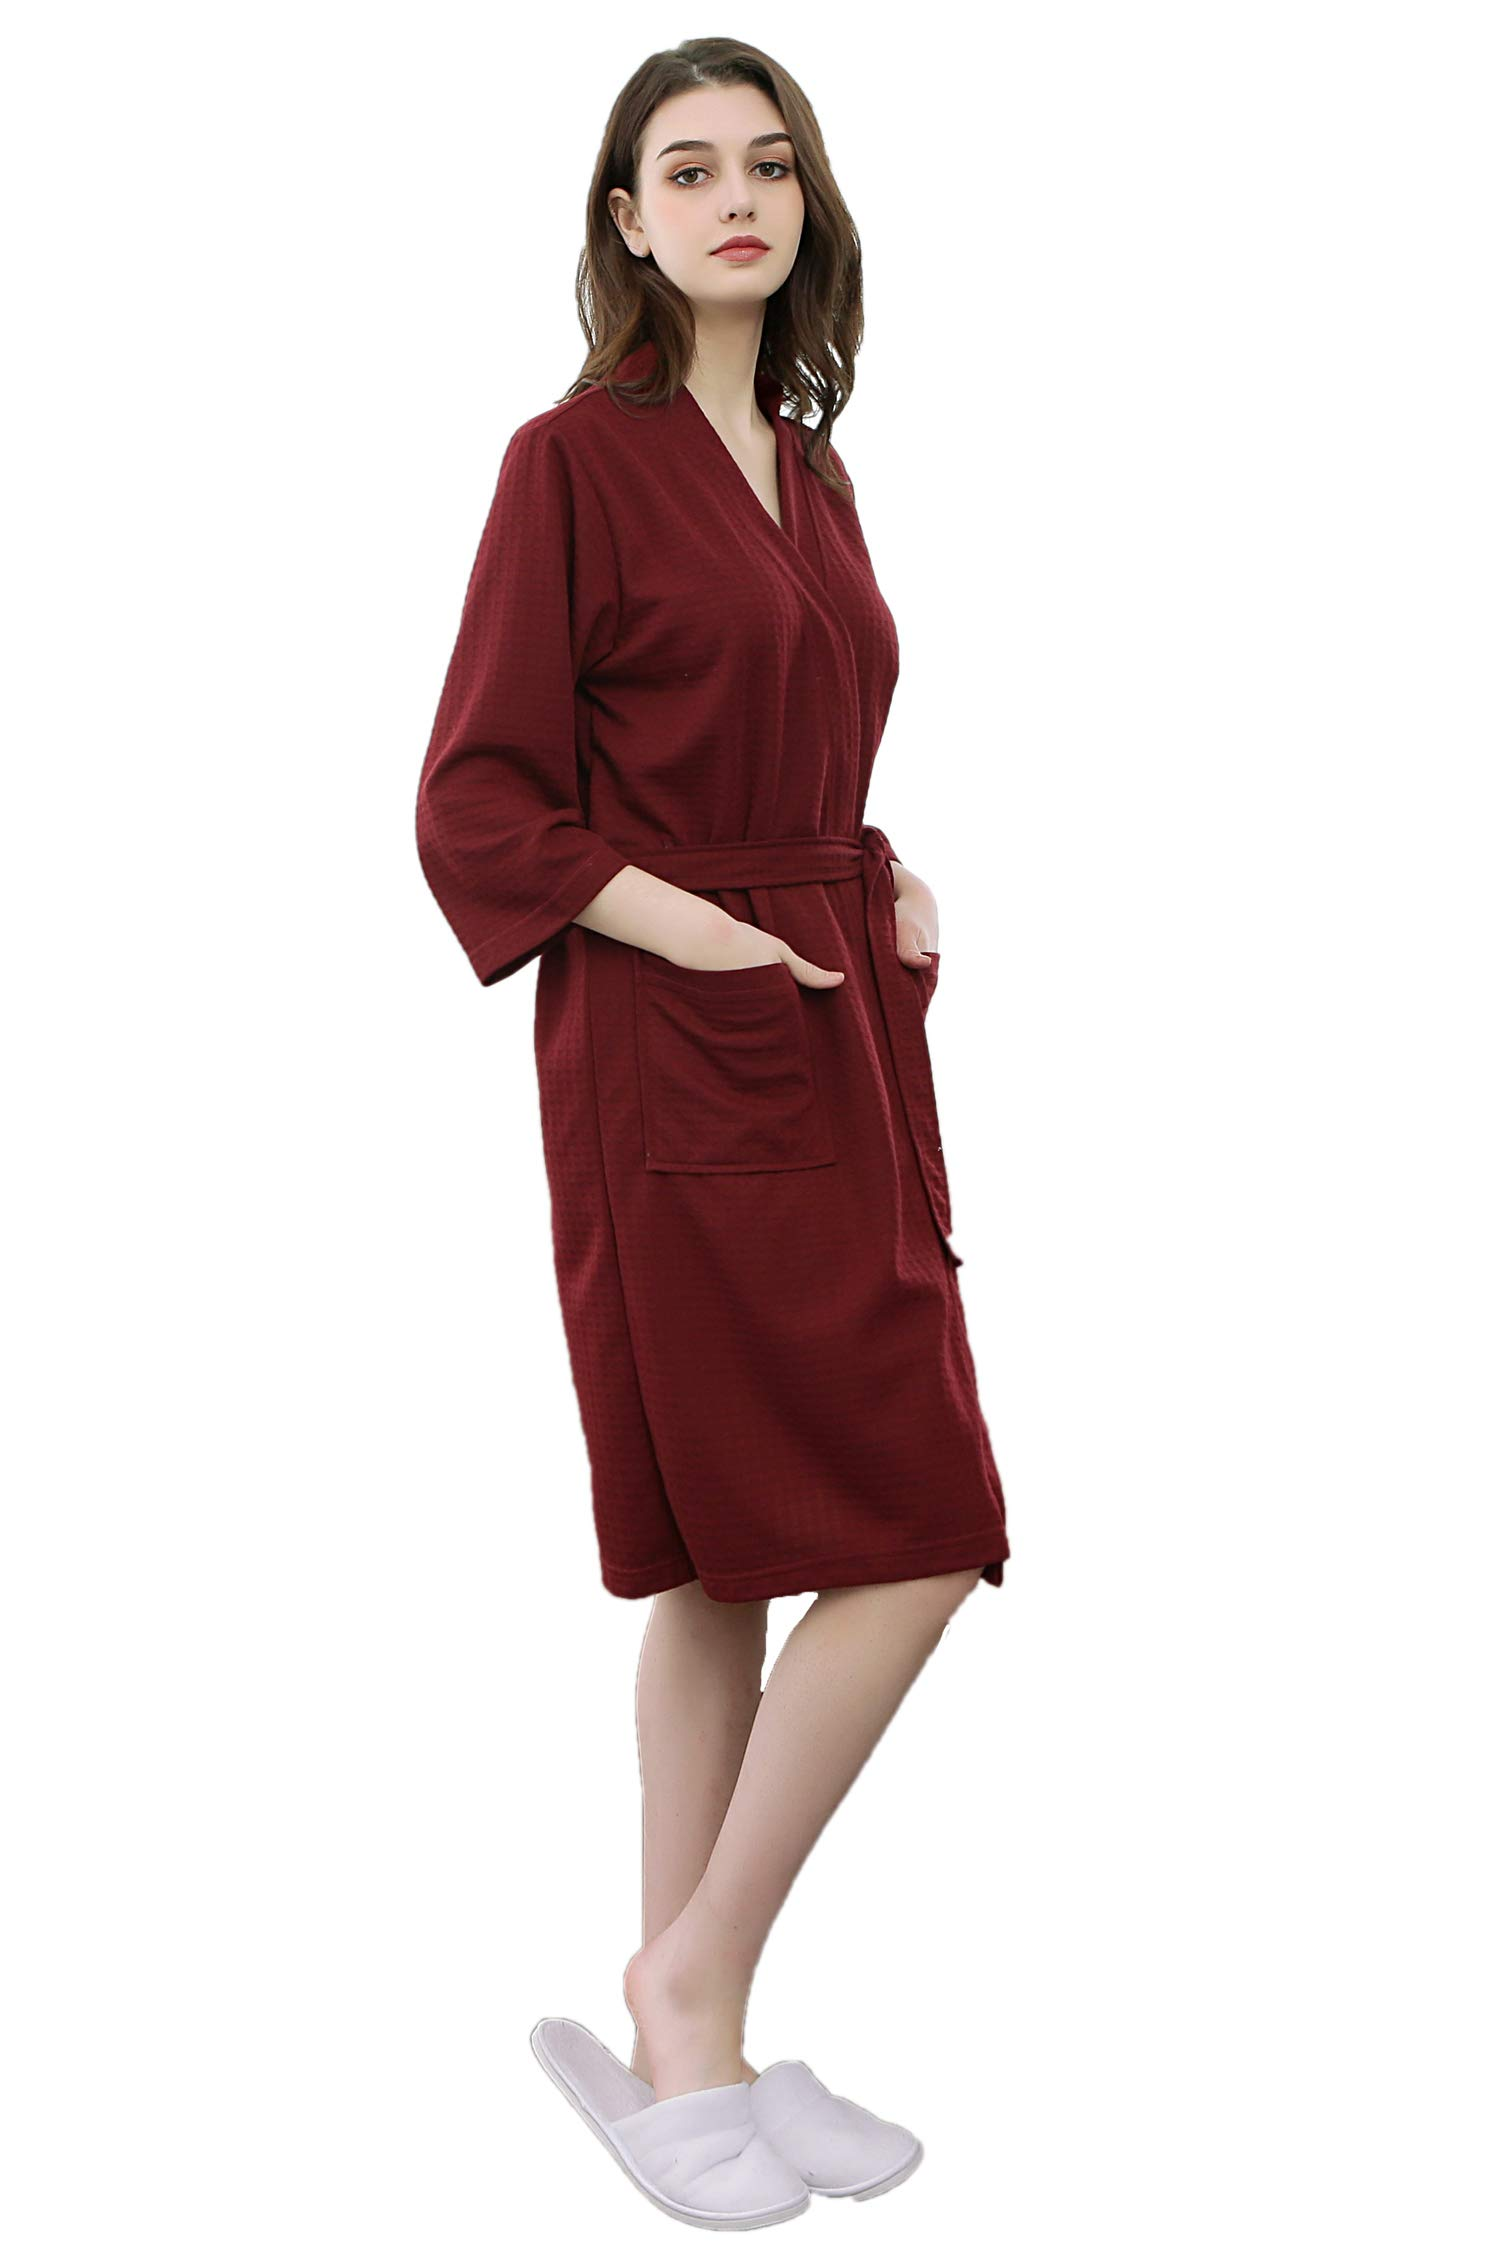 Cahayi Soft Waffle Men Women Bathrobe Autumn Long Robe Sleepwear Pajamas Kimono